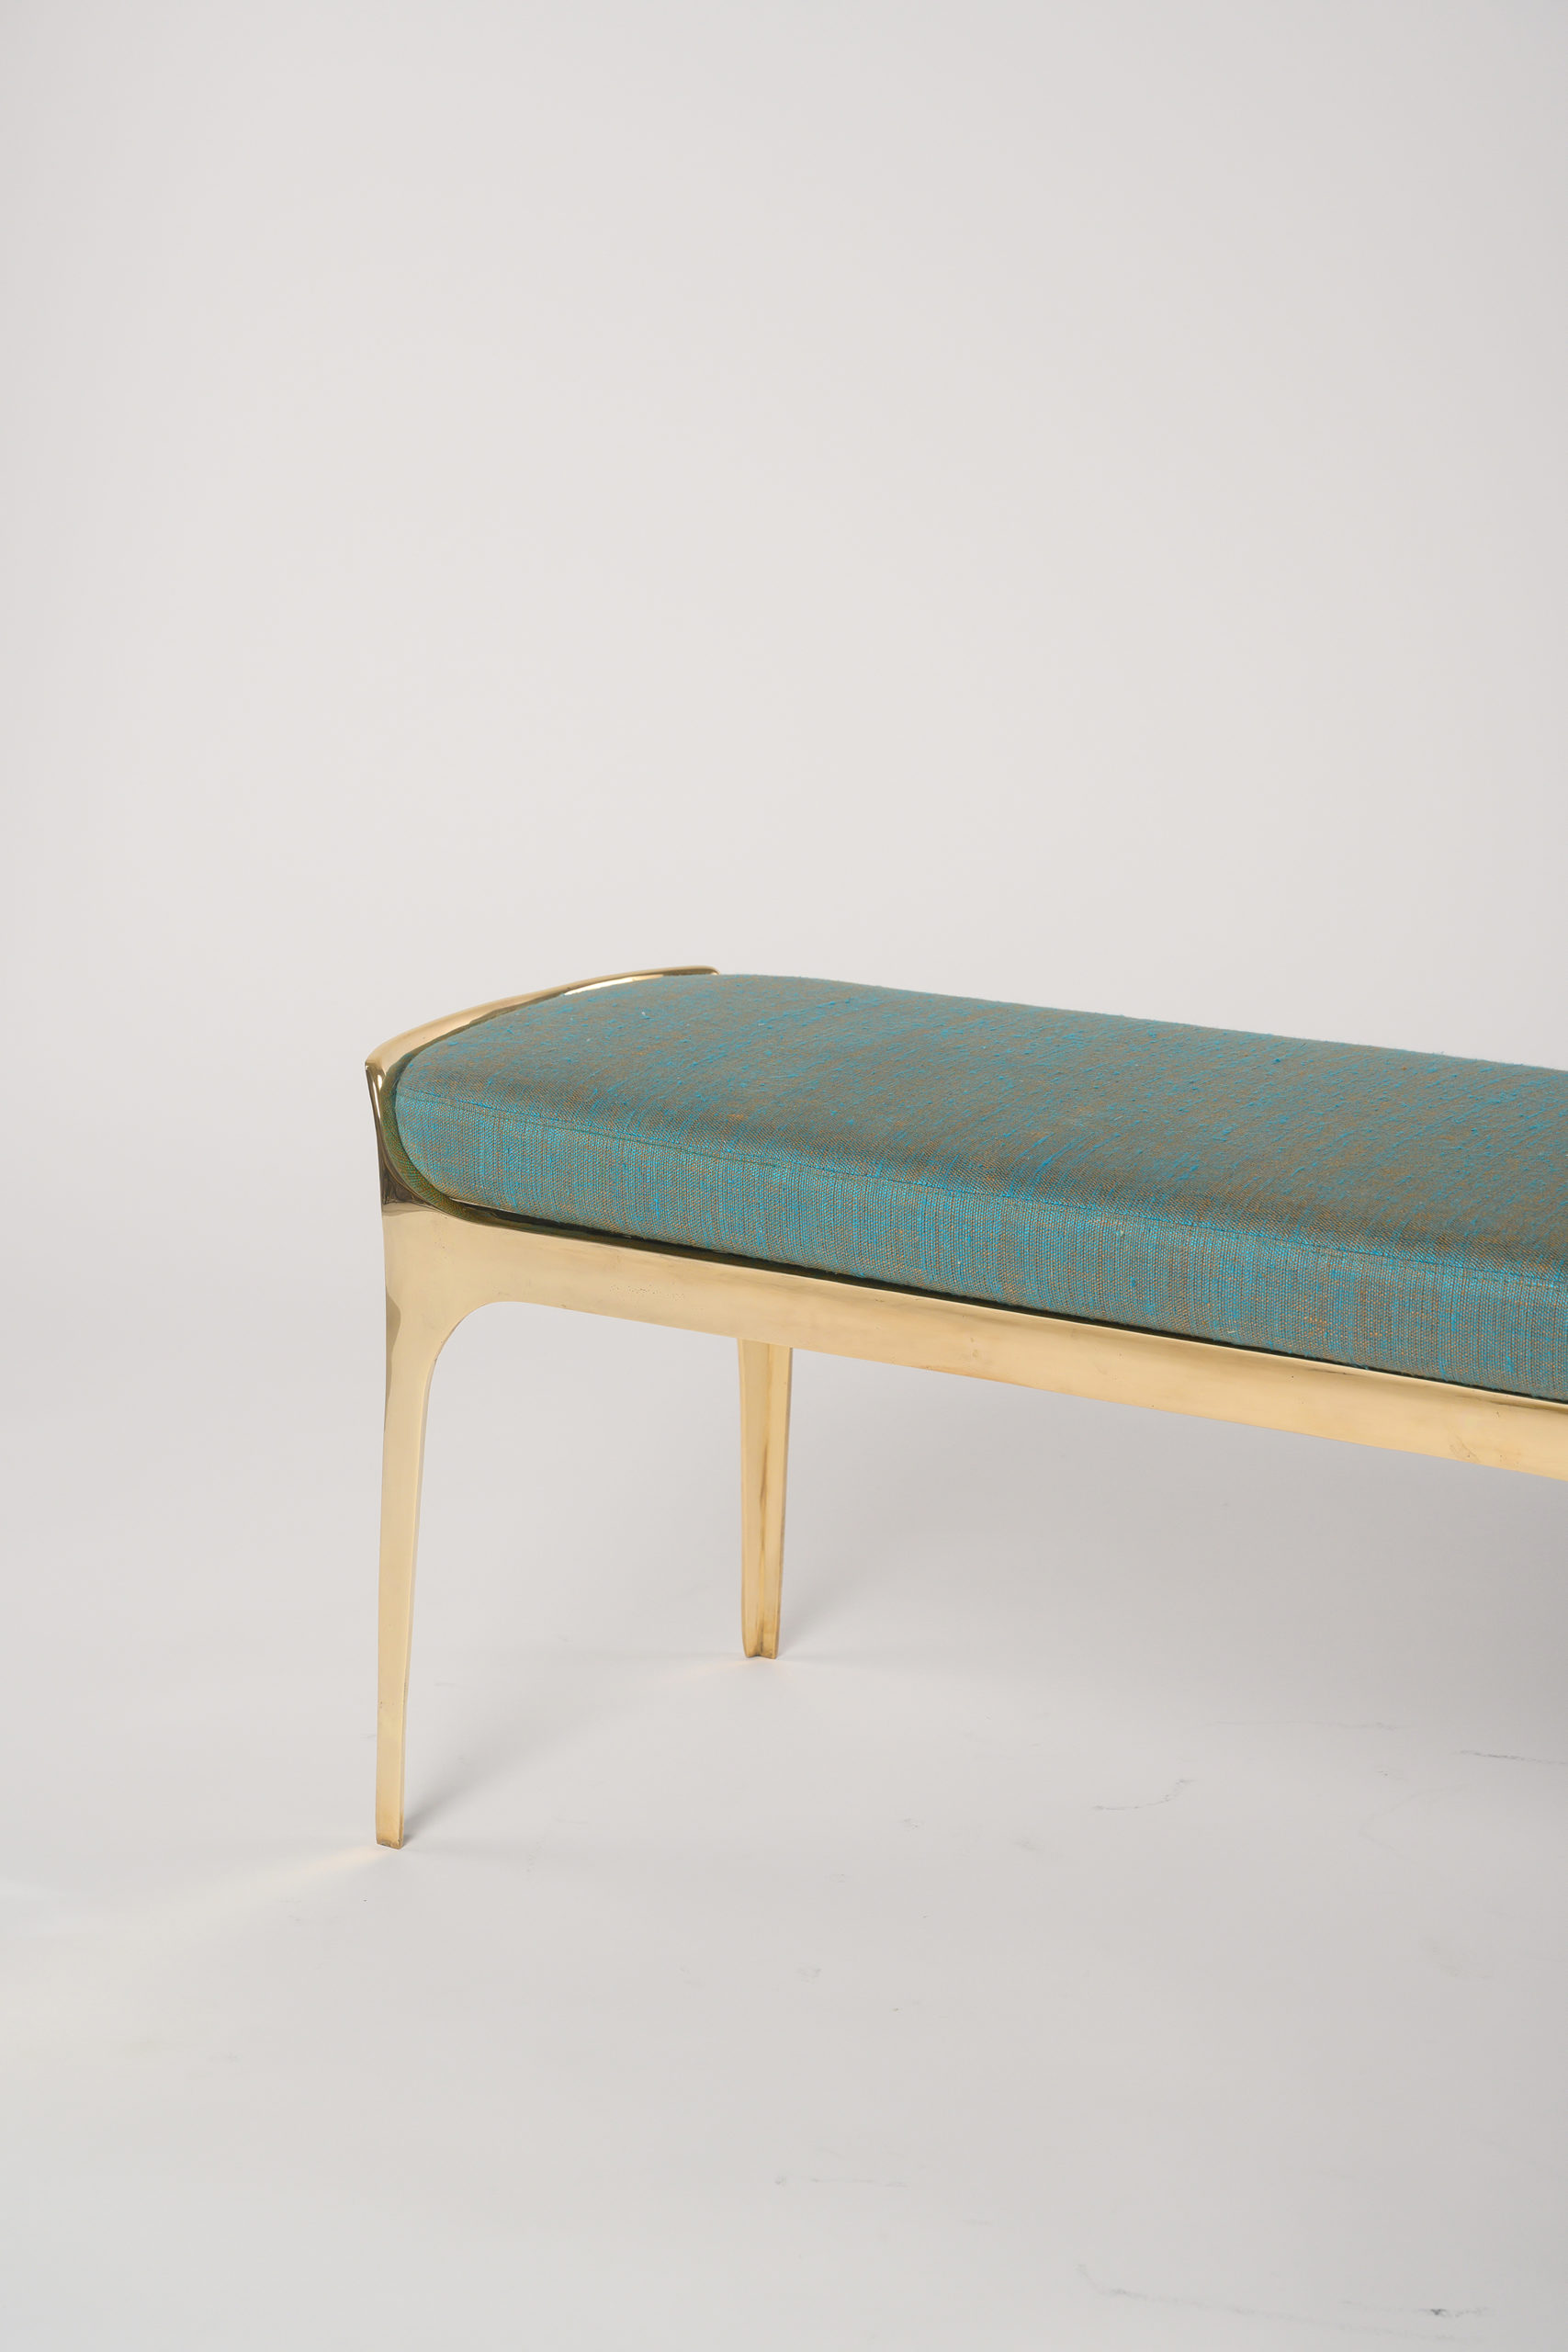 NYDC_WNWN_products_david_sutherland_elain_atelier_BEE_5220